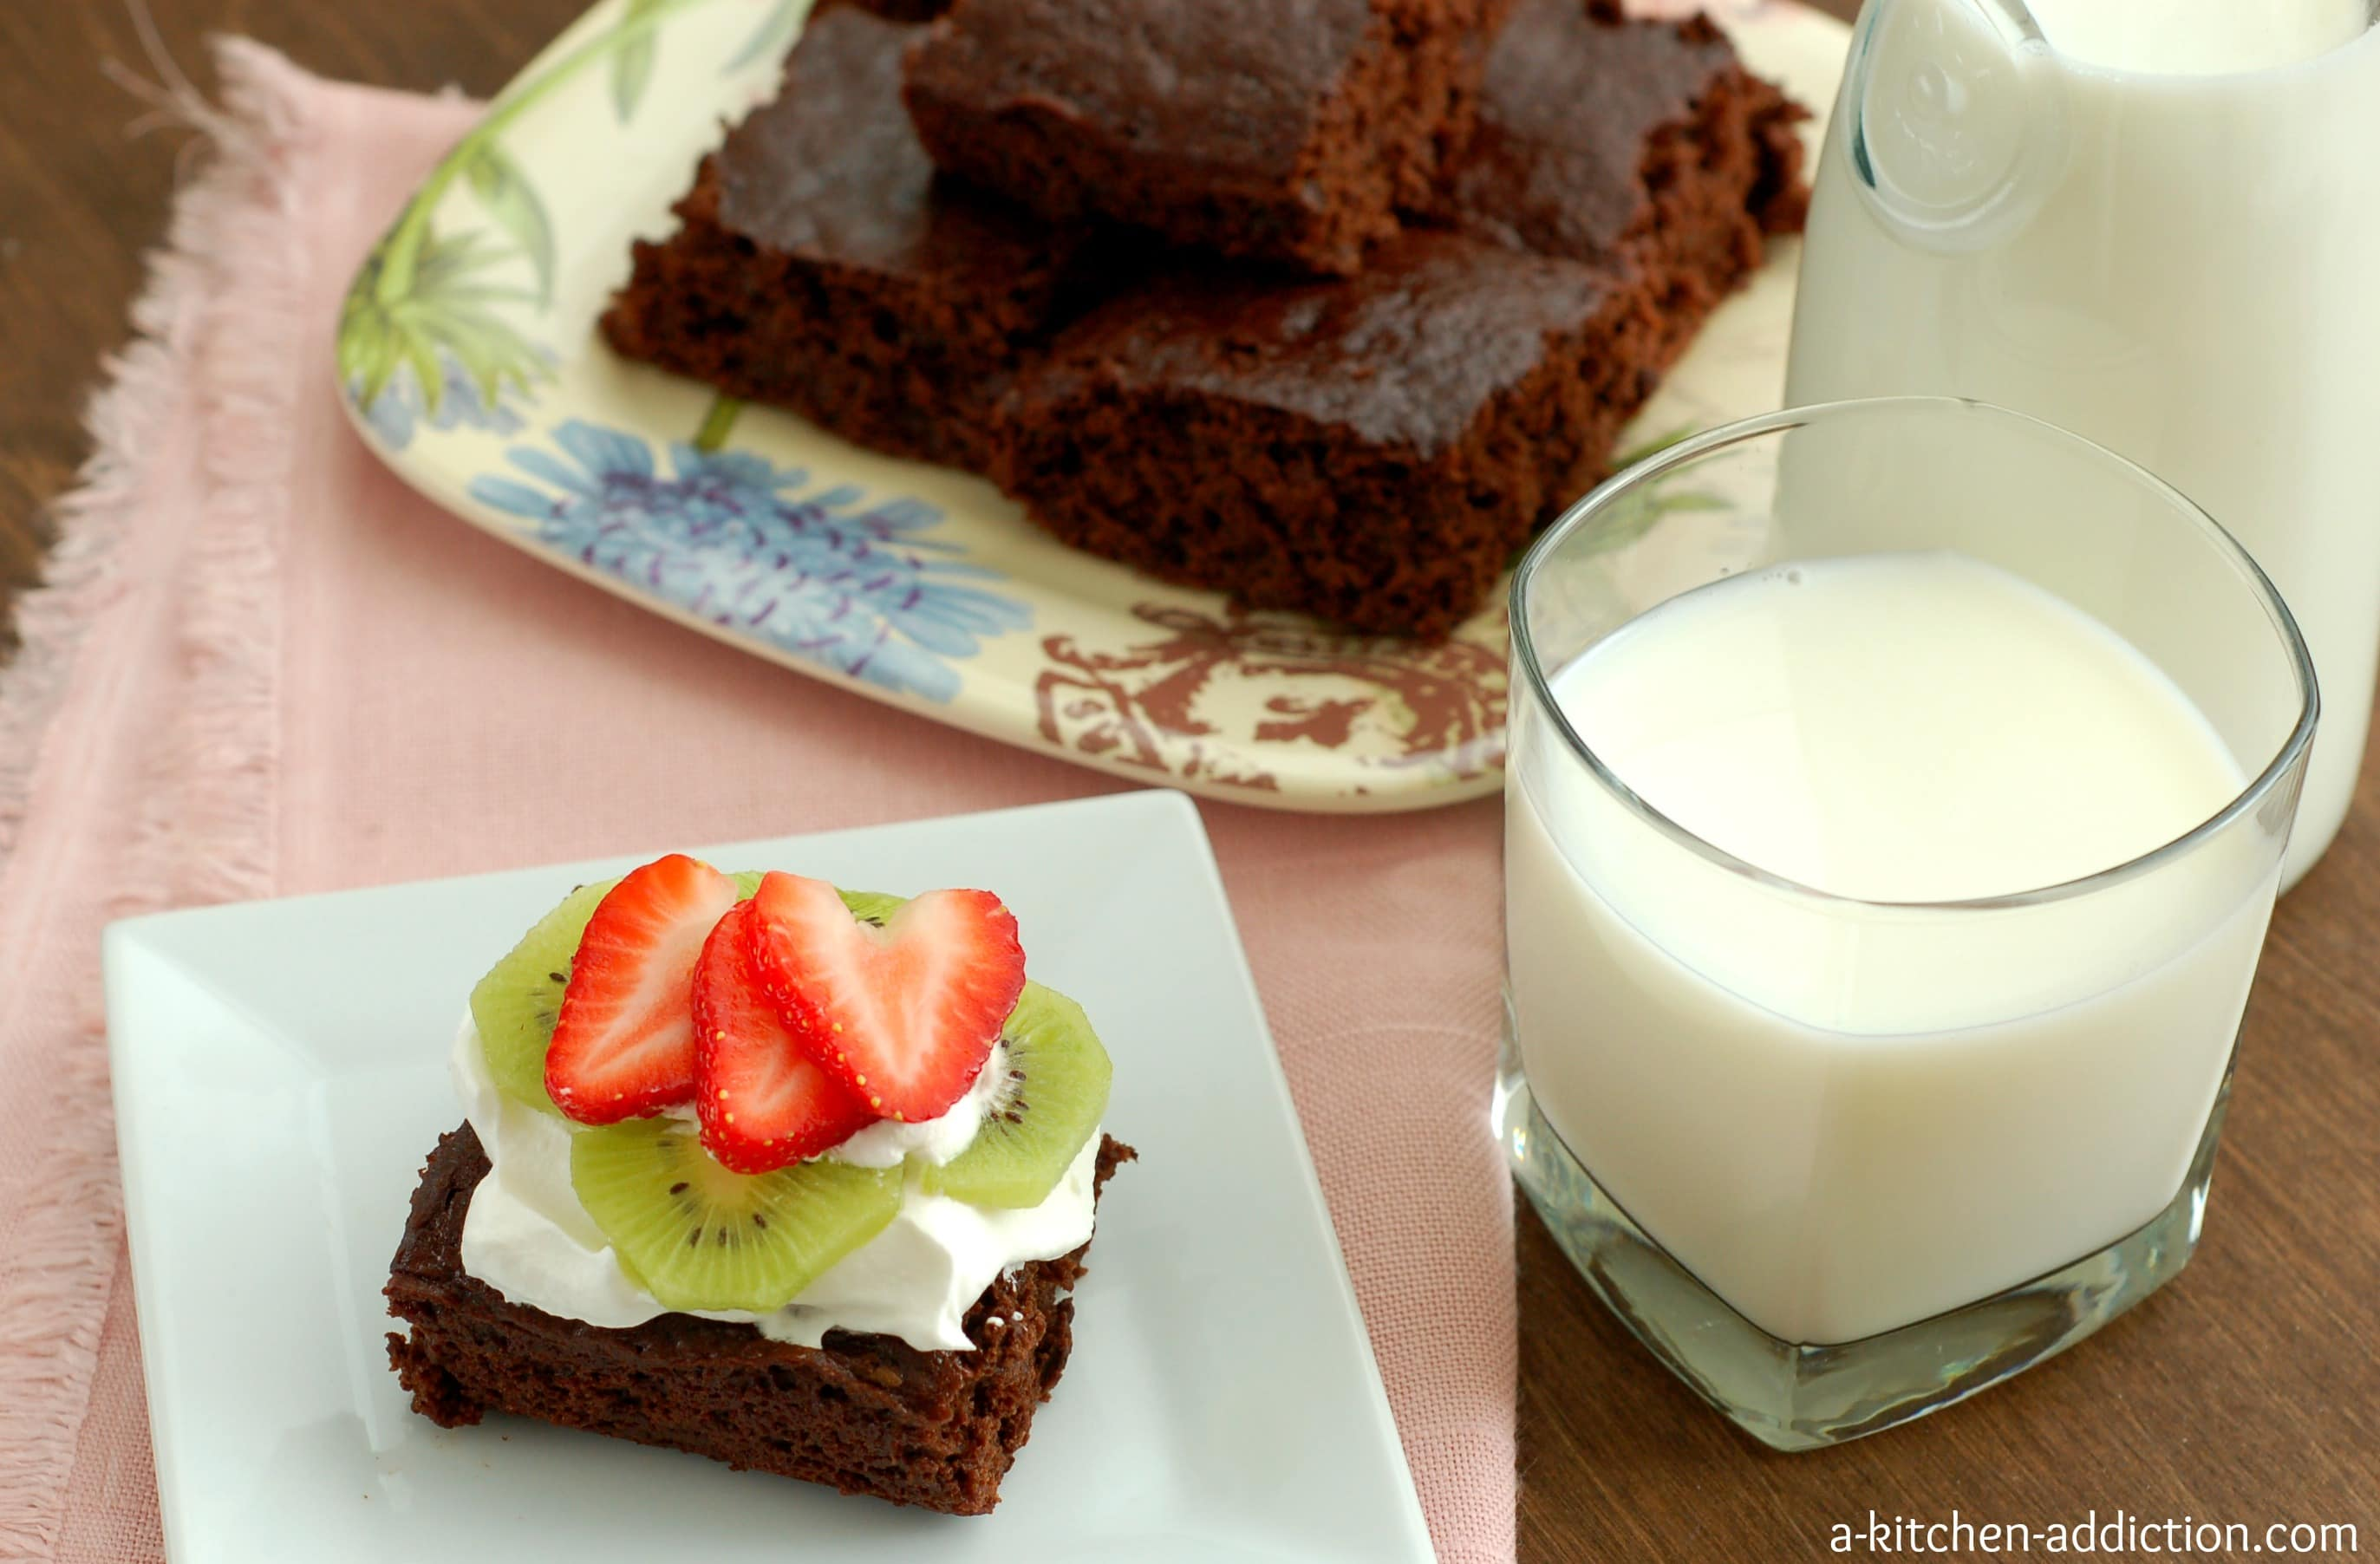 Skinny fudgy brownies quick easy a kitchen addiction for A kitchen addiction